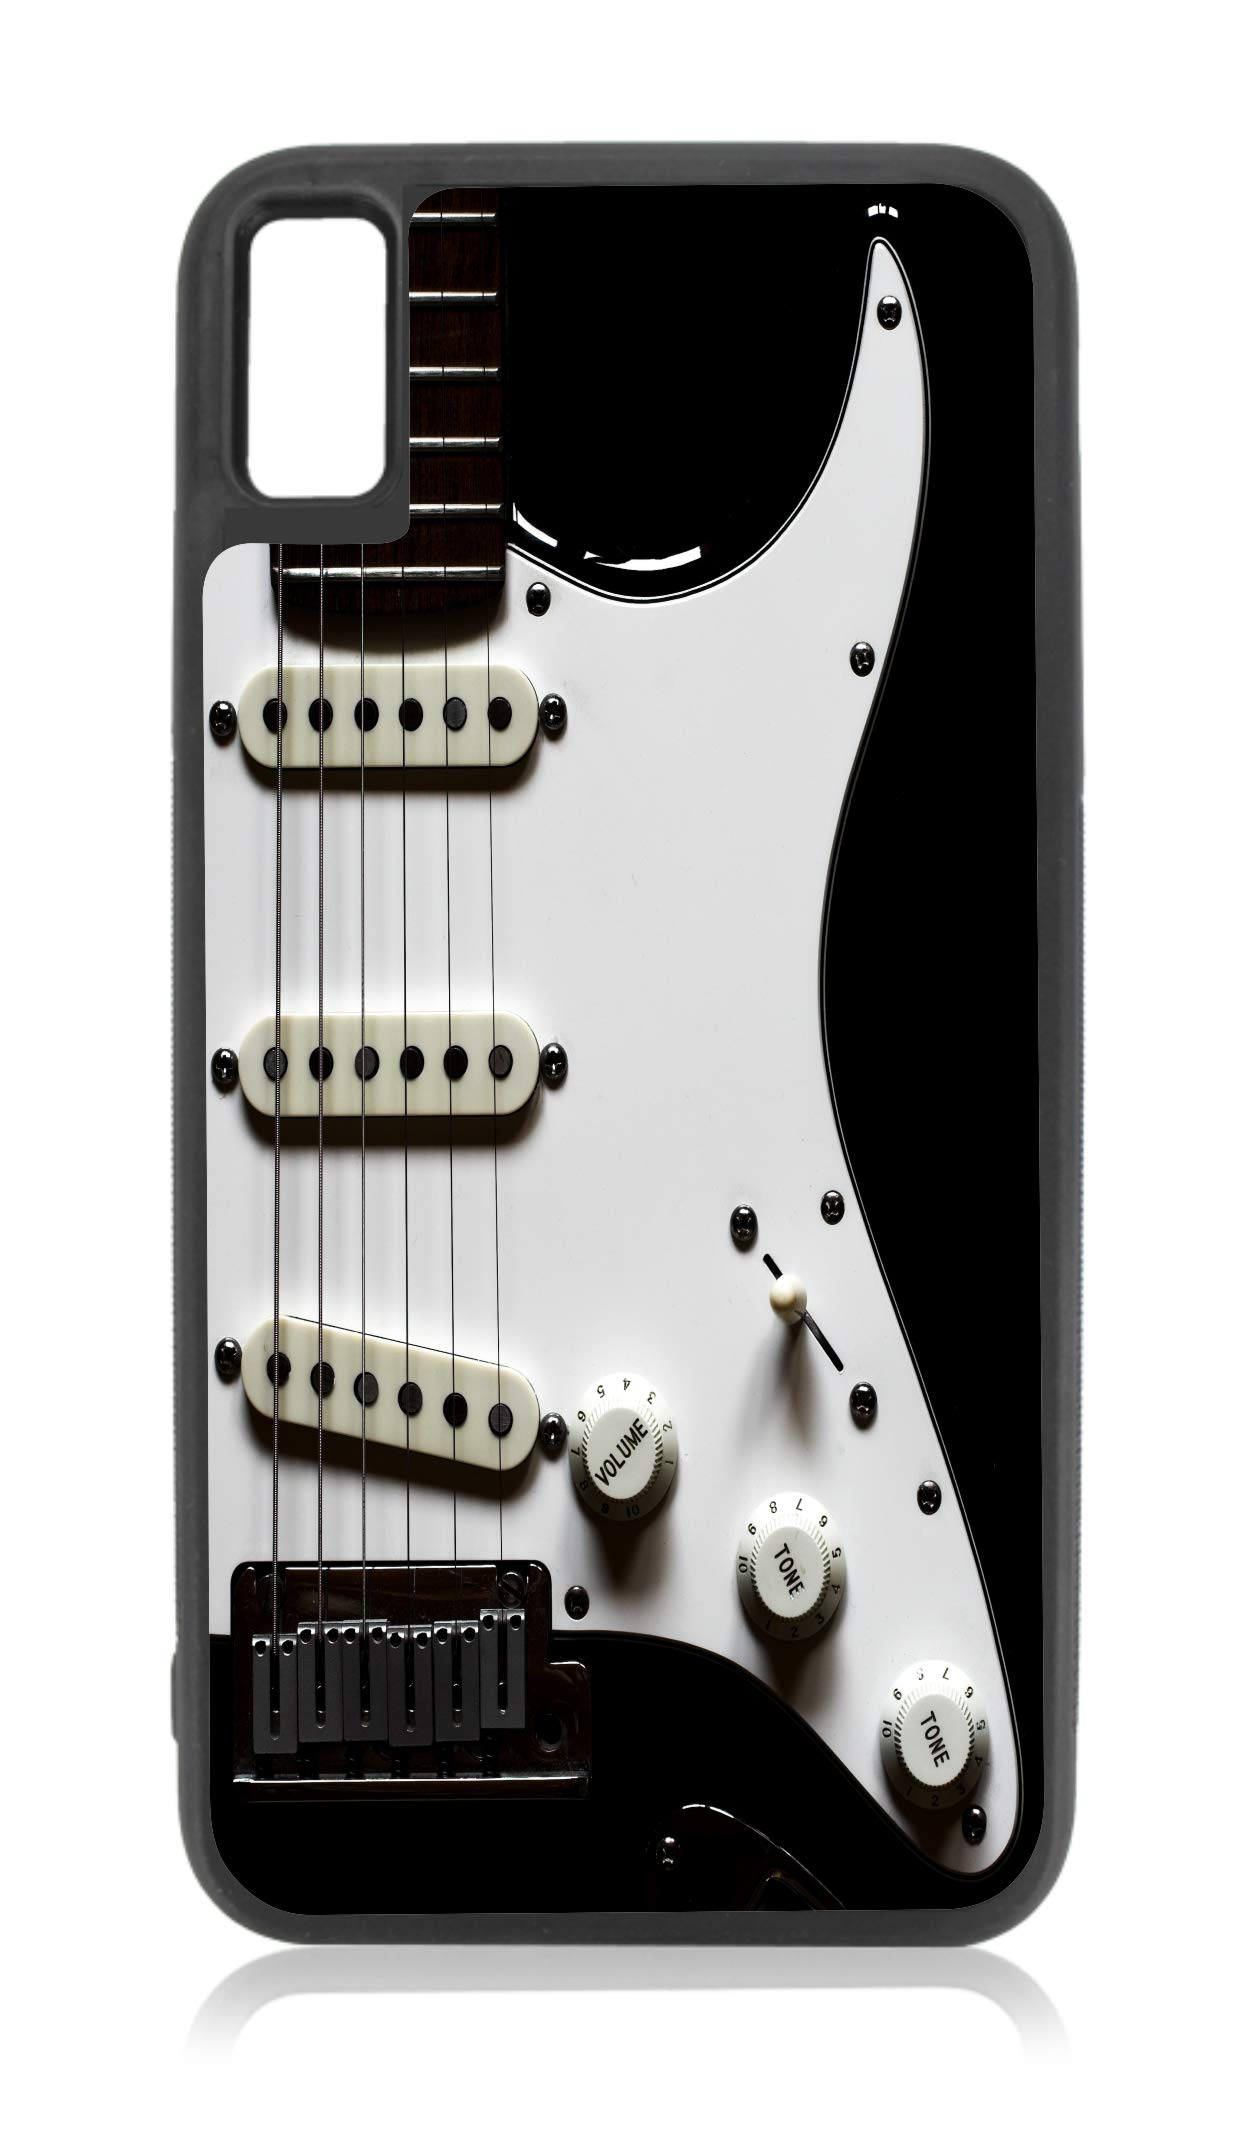 Acoustic Electric Guitar Print Design Black Rubber Case for iPhone XR - iPhone XR Phone Case - iPhone XR Accessories by Rosie Parker Inc.